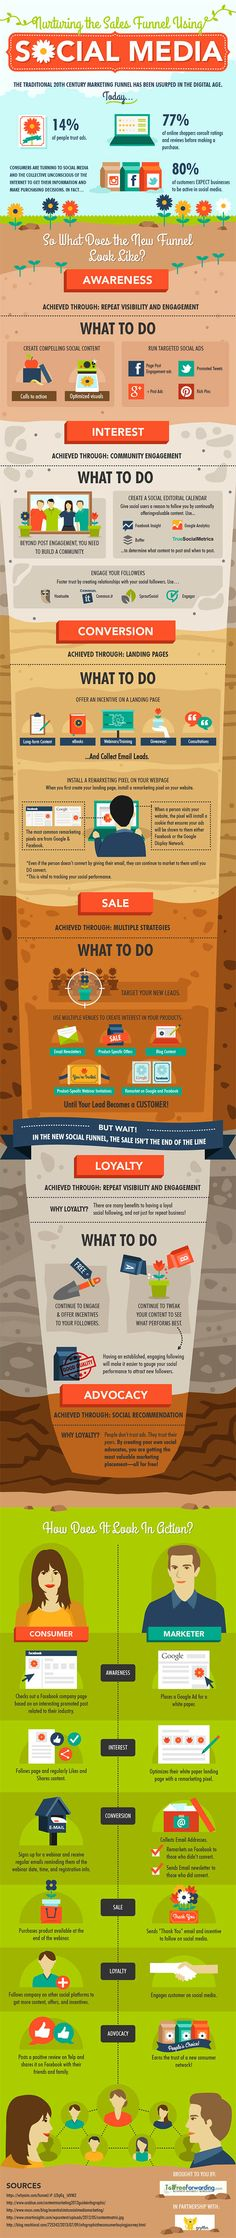 6 Steps To Nurturing The Sales Funnel With Social Media - Social Auto Posting - Schedule your social post automatically. - 6 Steps To Nurturing The Sales Funnel With Social Media Marketing Mail, Marketing Trends, Facebook Marketing, Marketing Digital, Internet Marketing, Social Media Marketing, Inbound Marketing, Content Marketing, Online Marketing